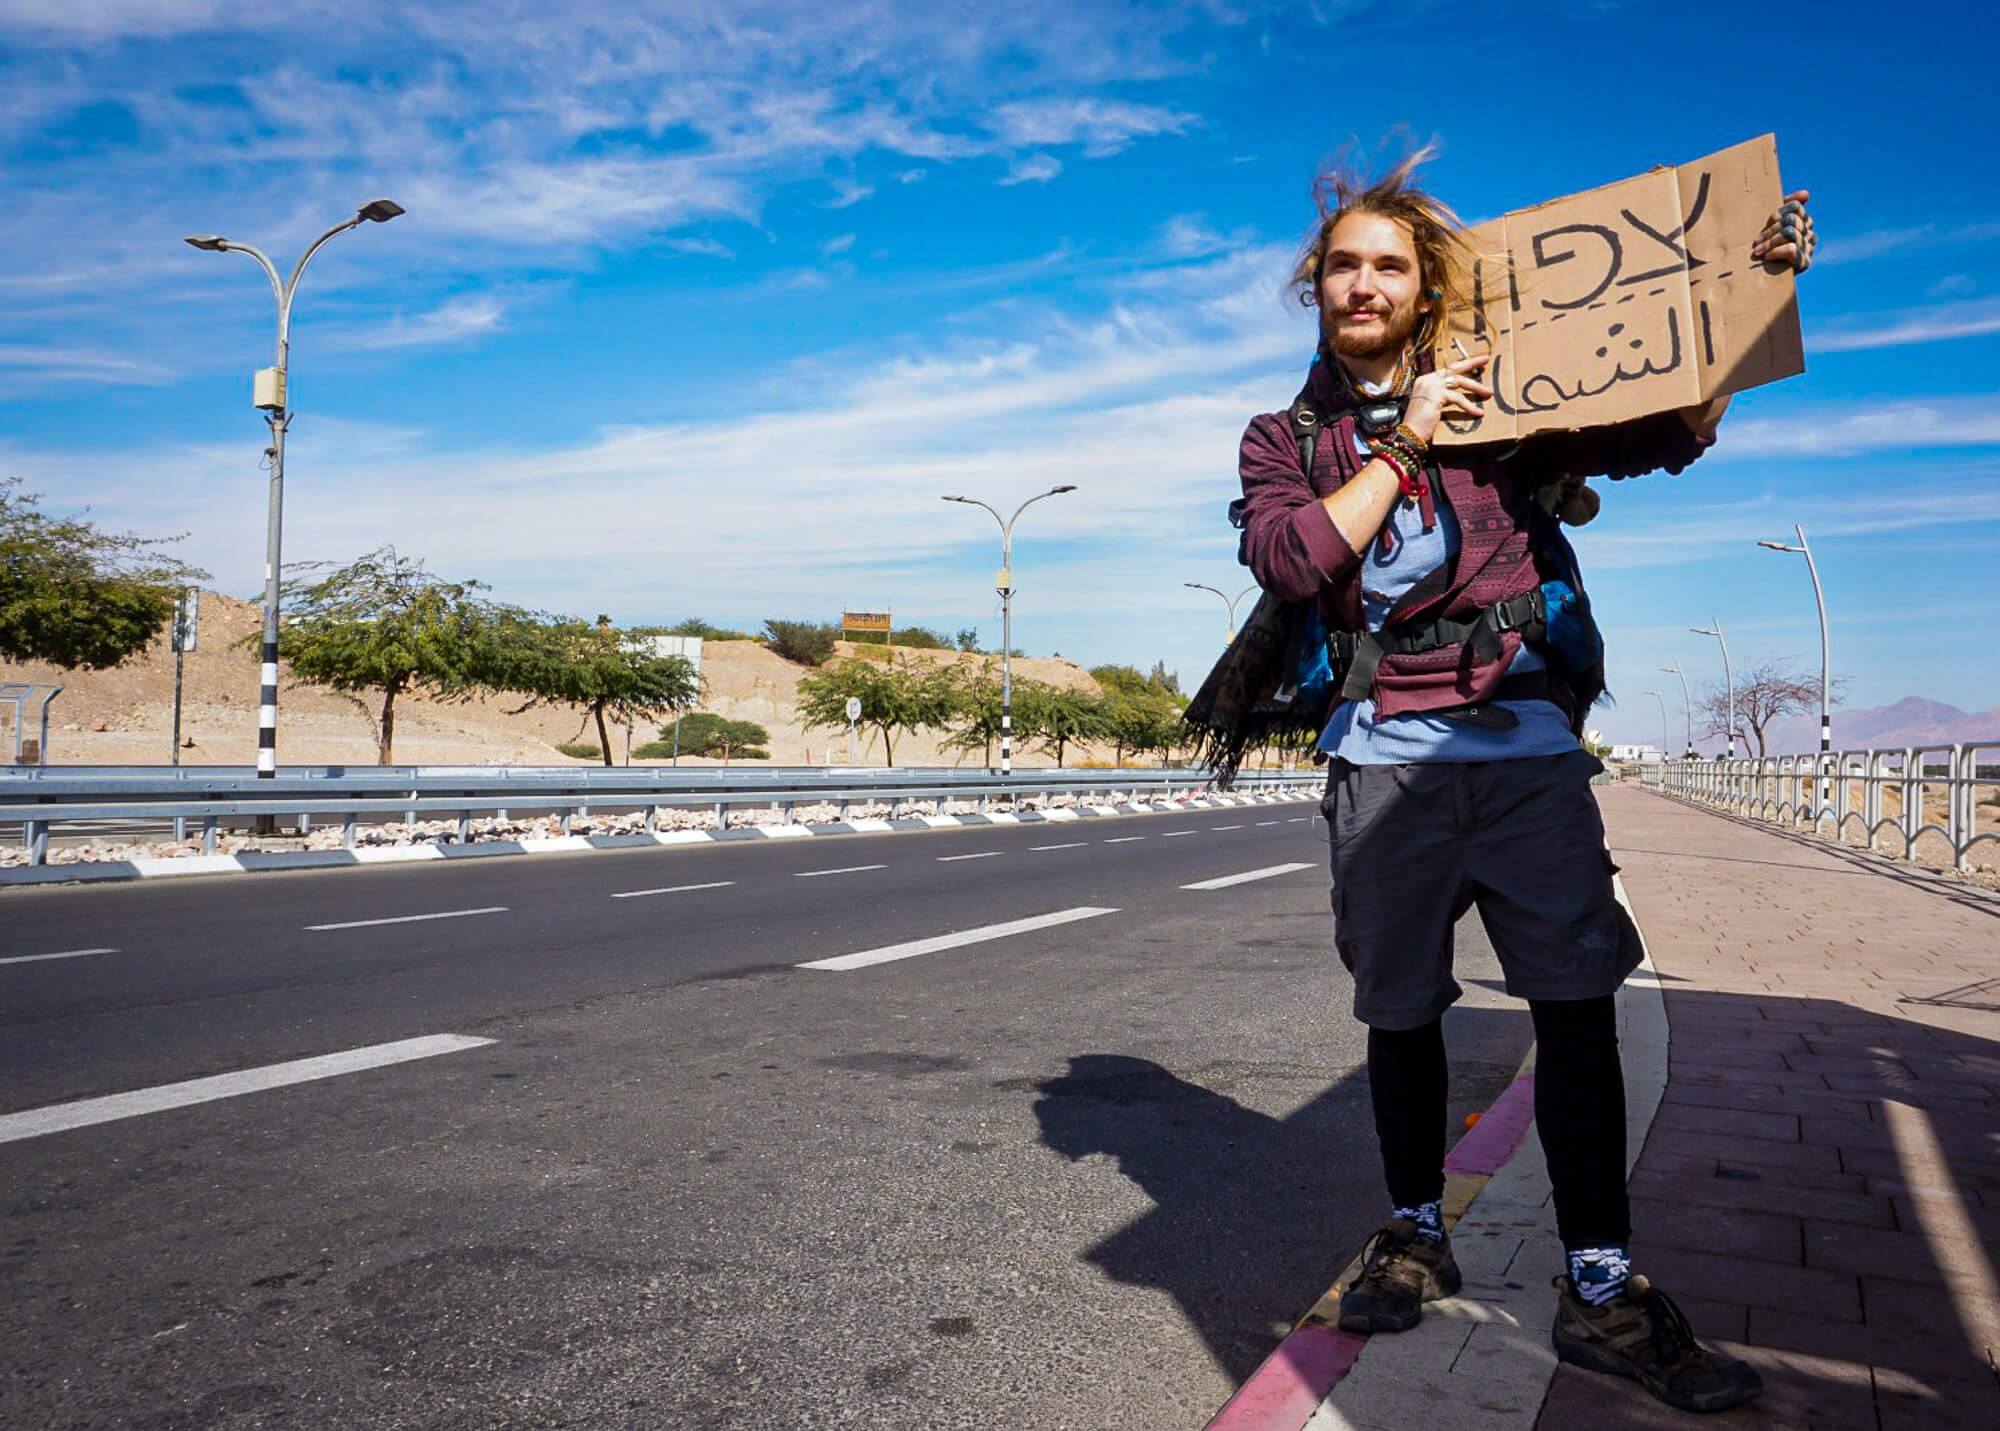 Best way to travel the world: hitchhiking